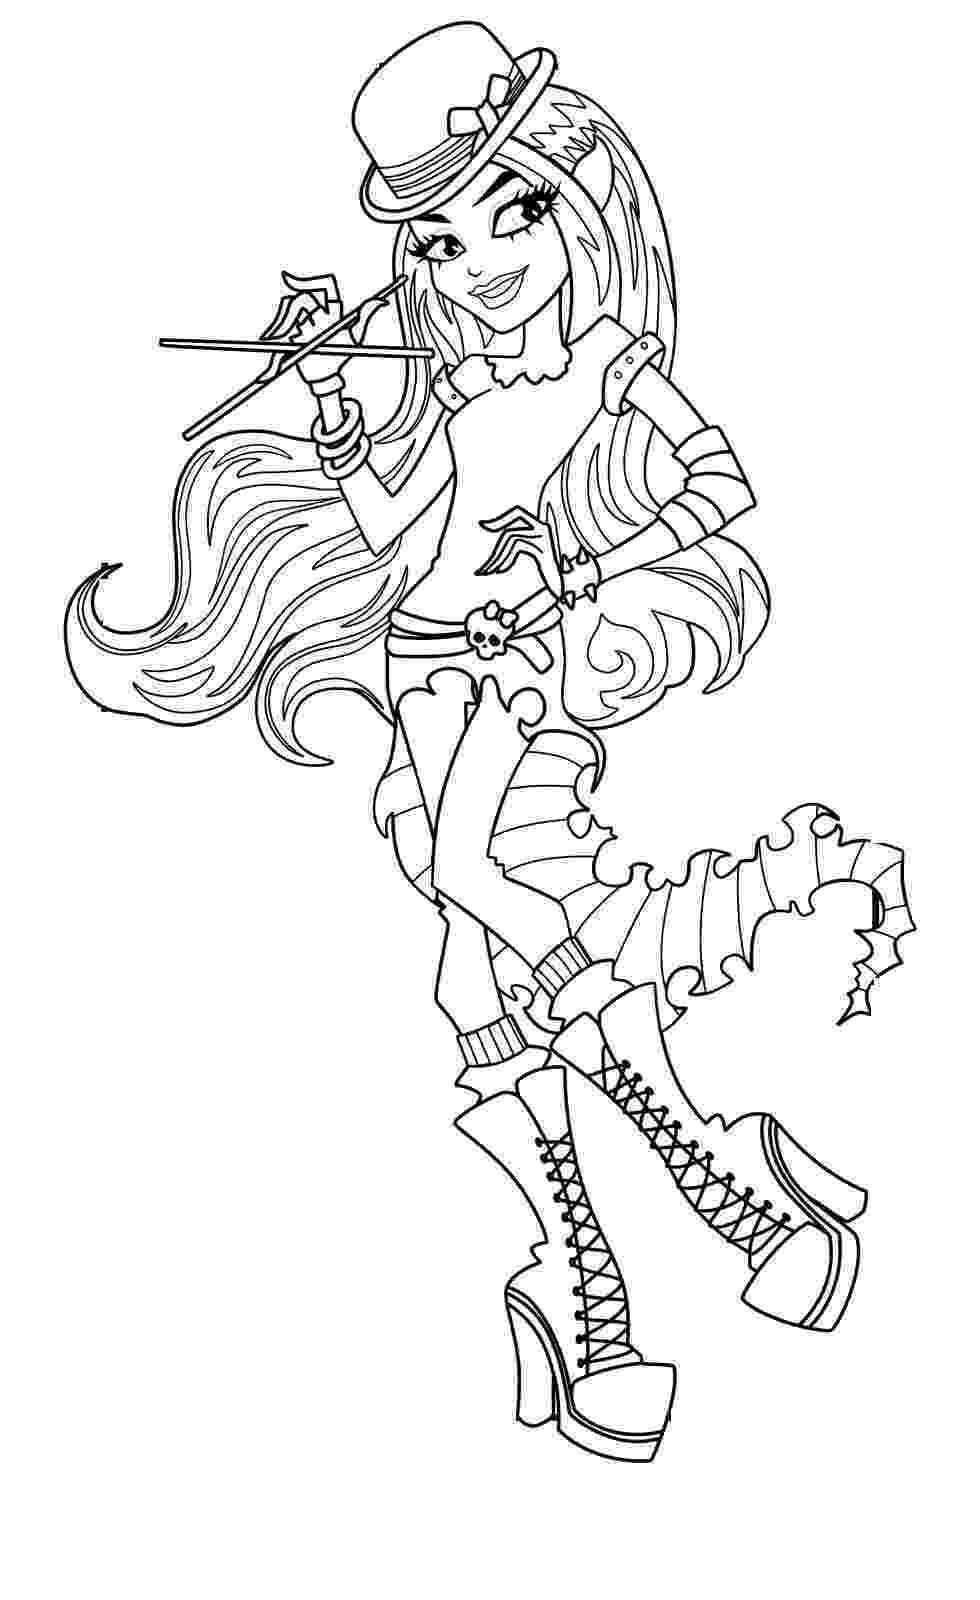 coloring page monster high 1000 images about mhigh on pinterest page high coloring monster